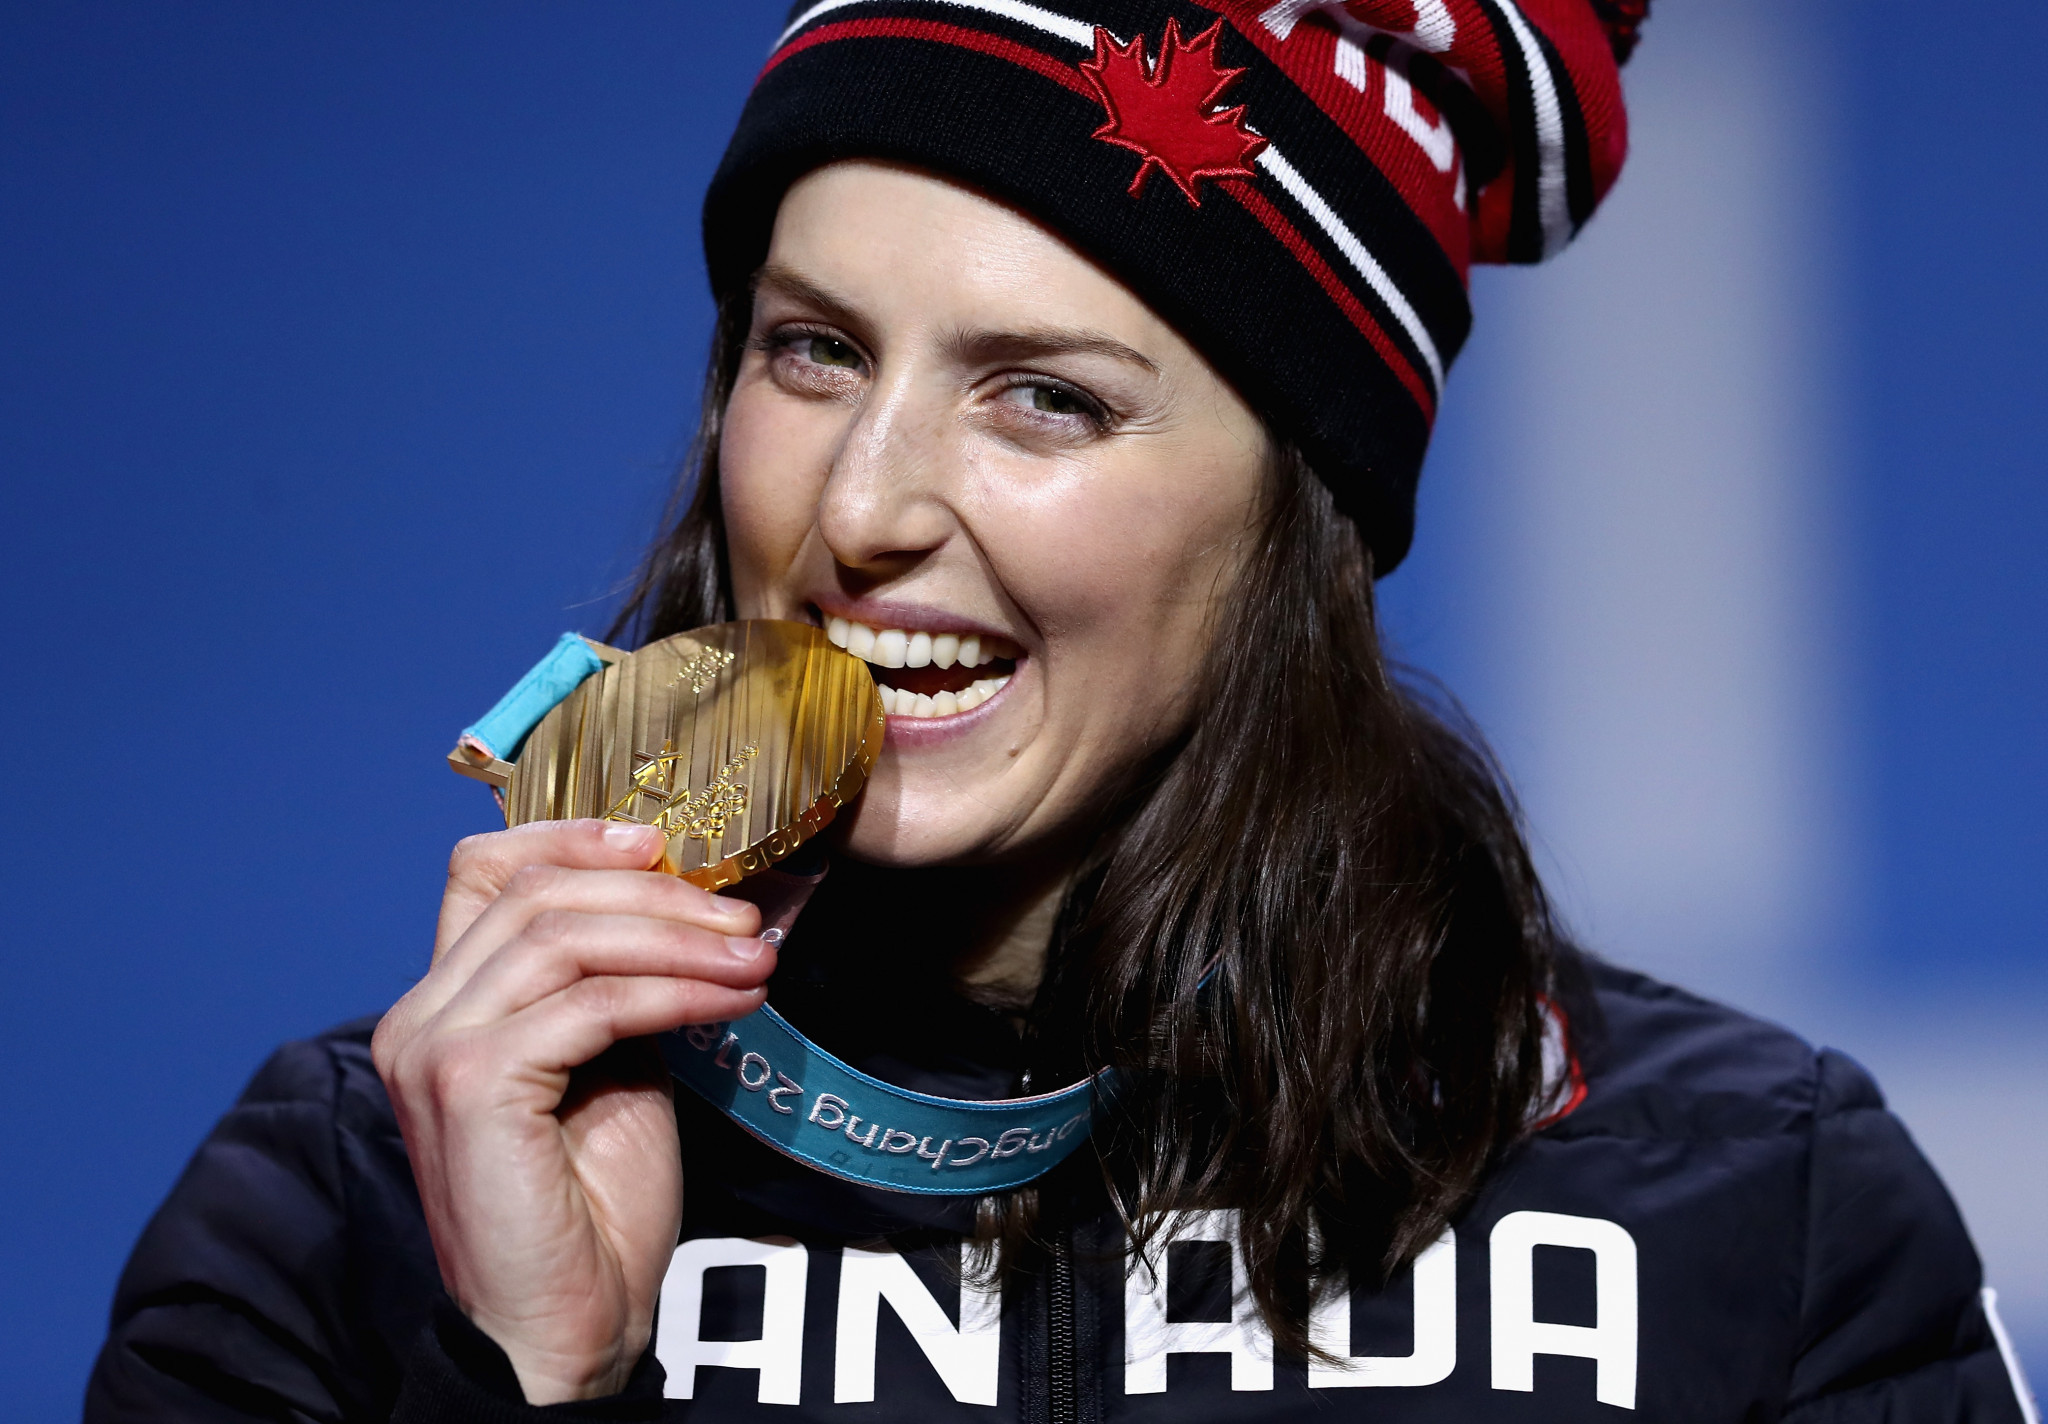 Canadian Olympic ski cross gold medallist announces retirement at age of 29